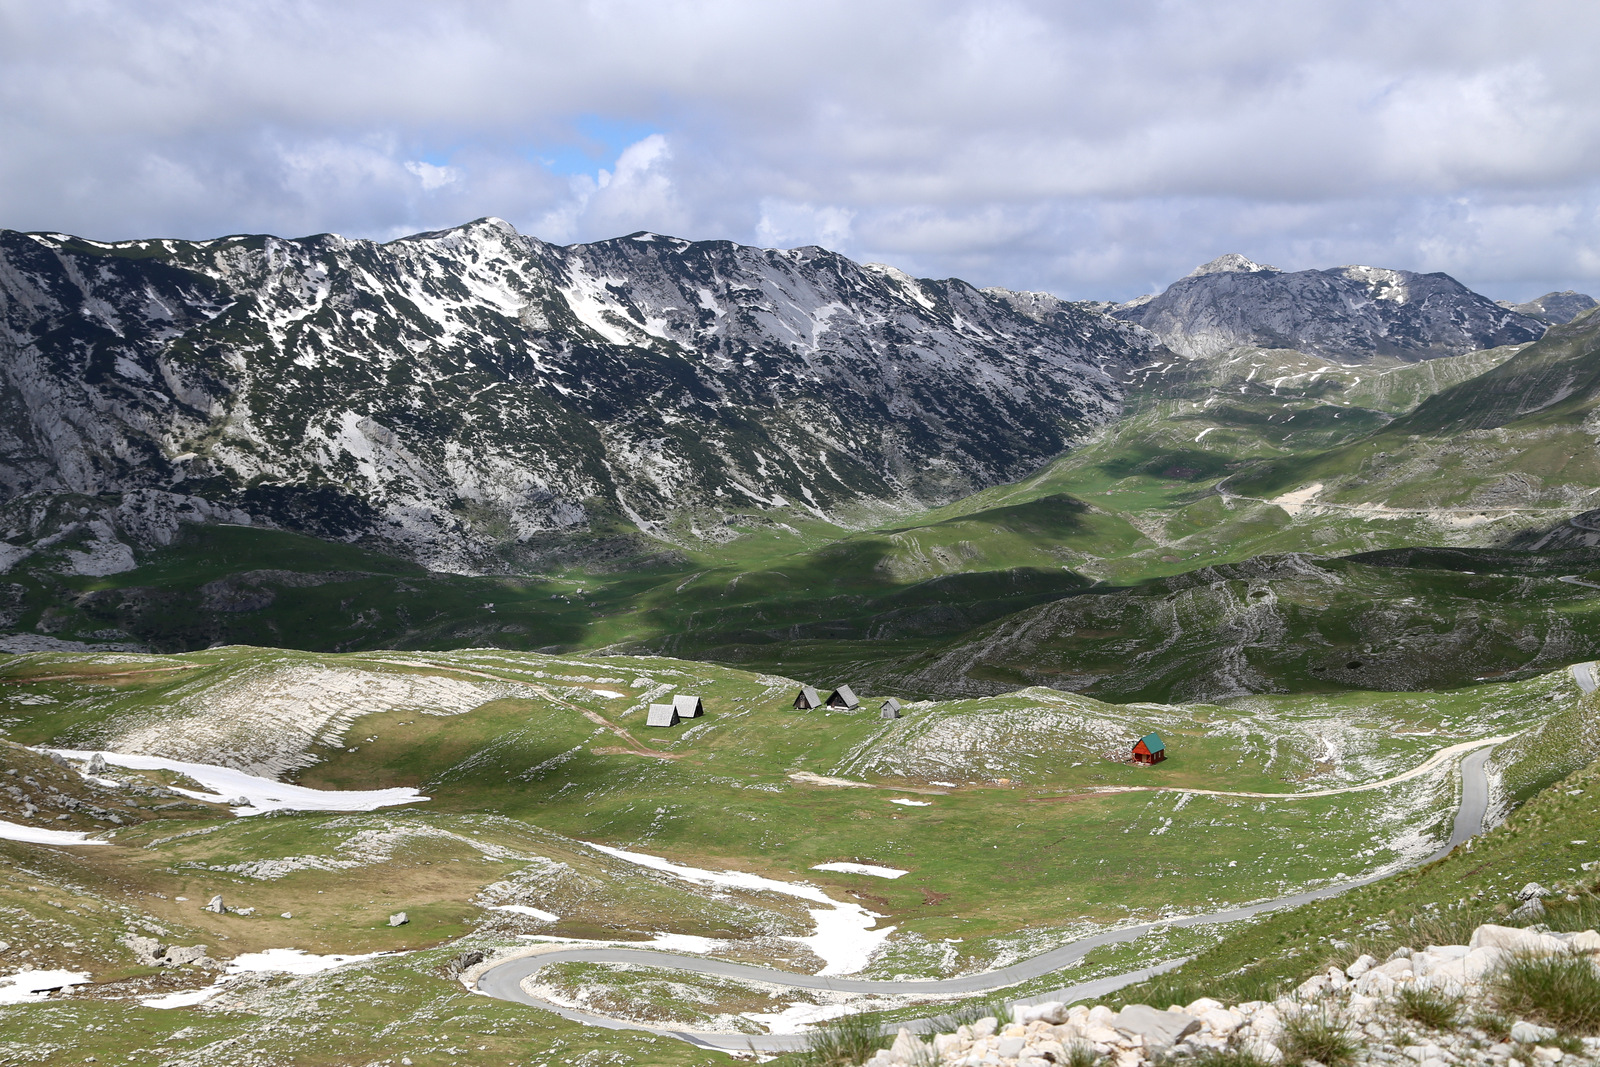 Sedlo pass in Durmitor, 1907 m. high